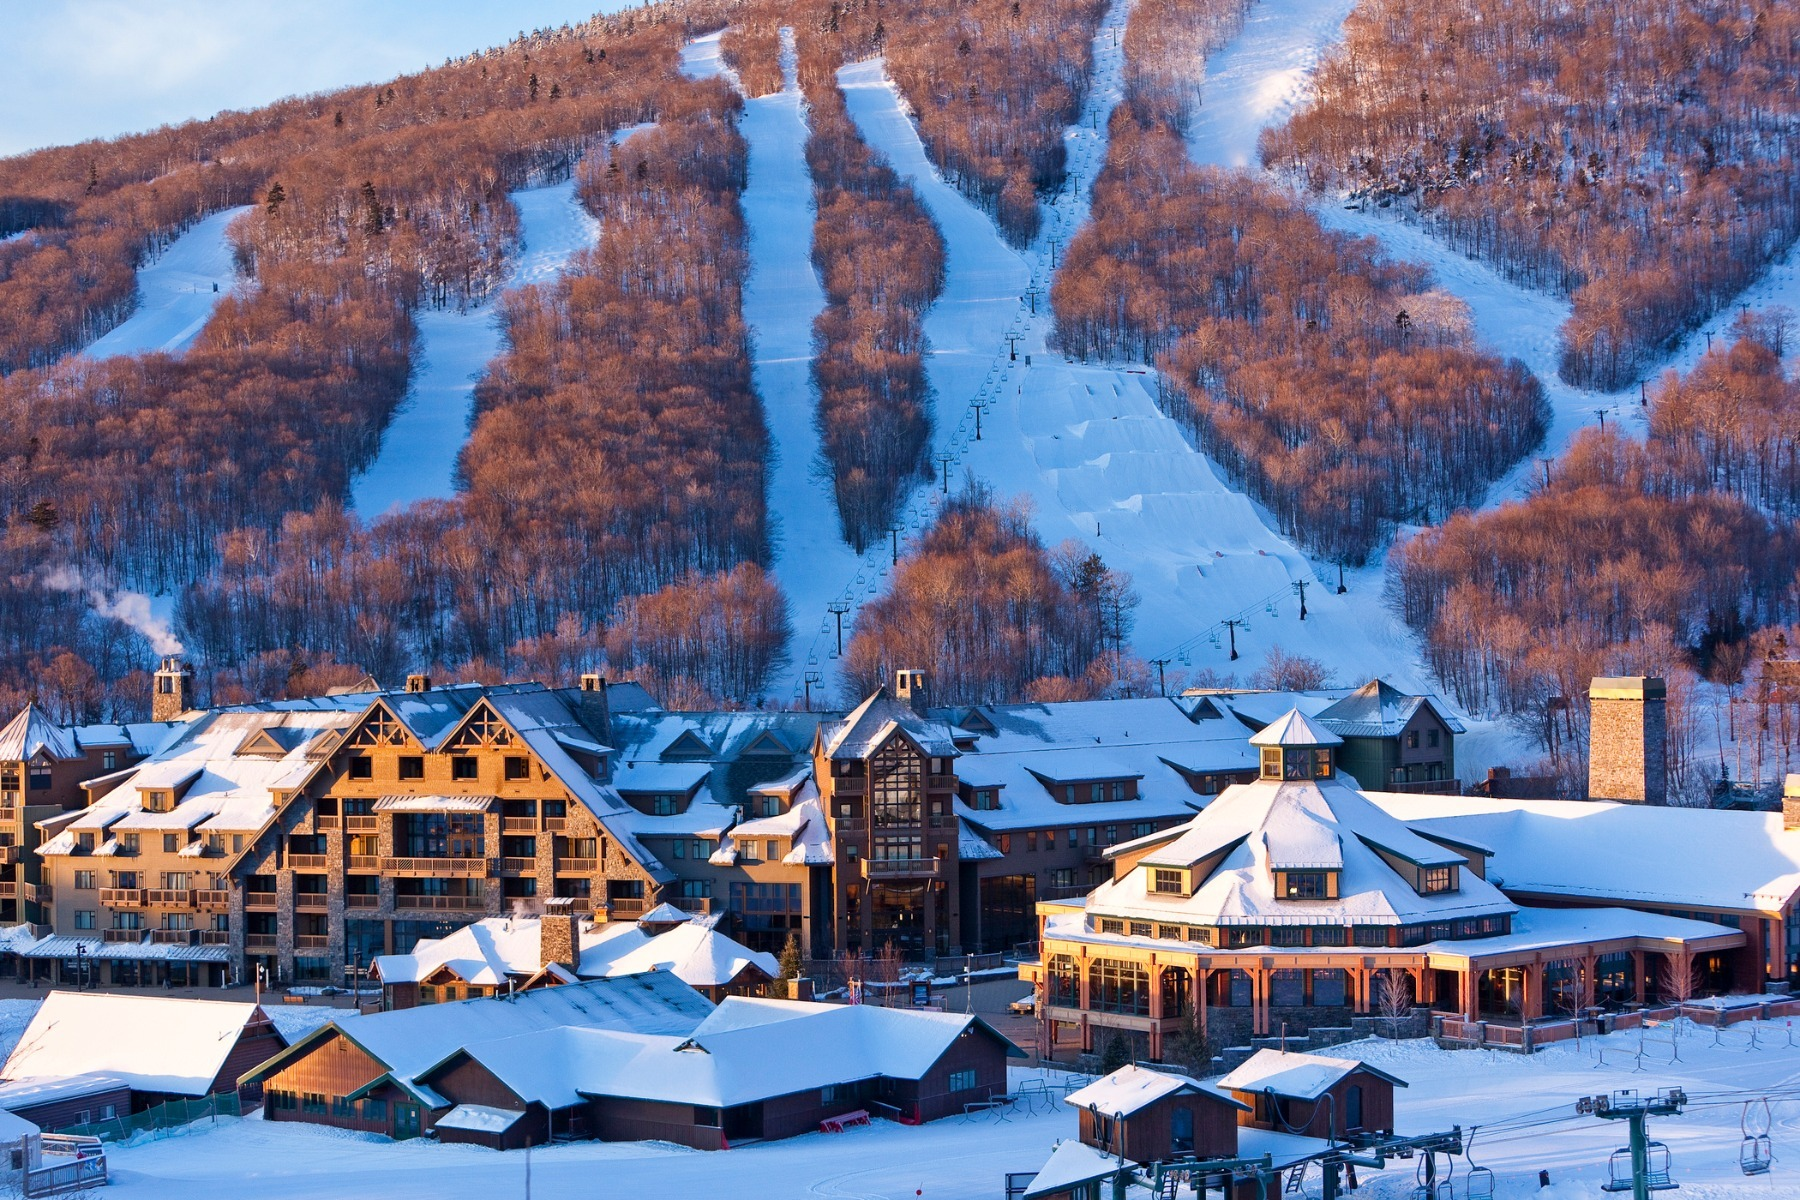 Stowe Mountain Lodge sits at the base of Spruce Peak for ski in/out access.